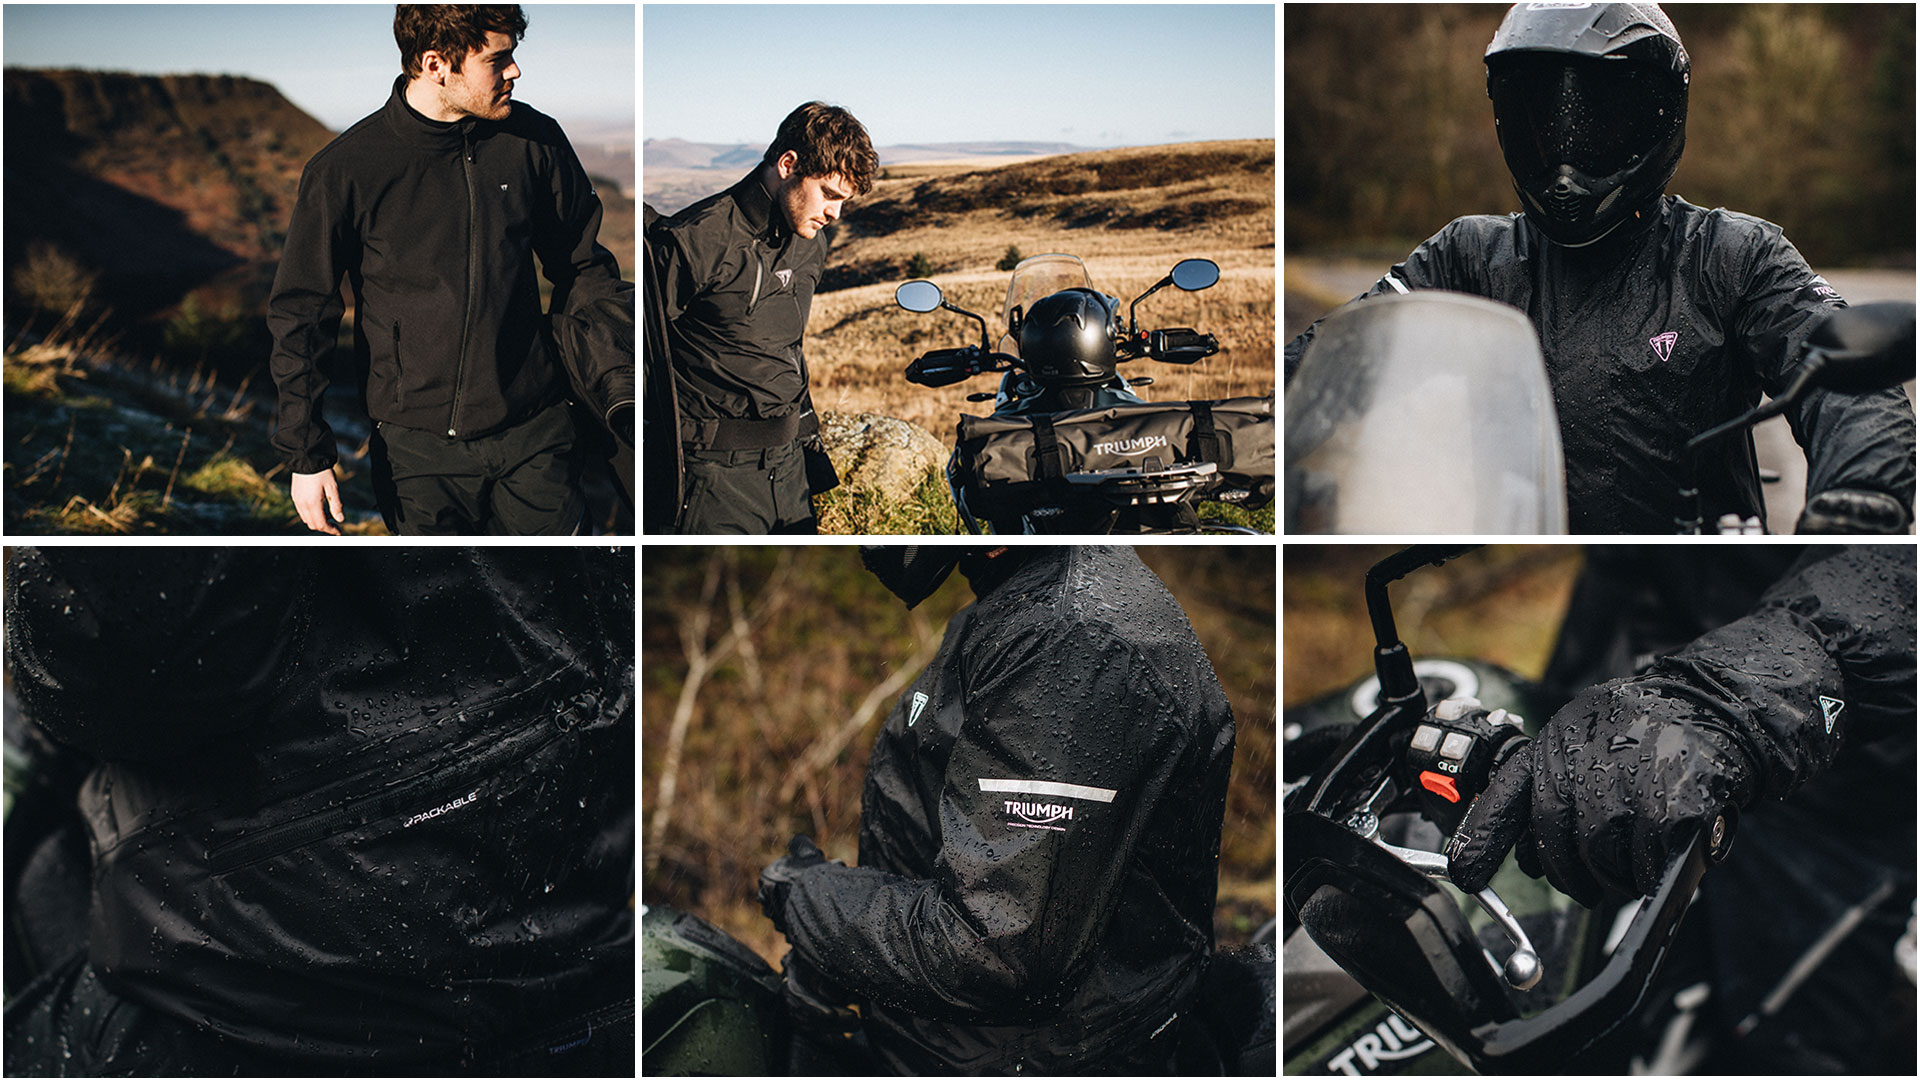 Triumph Riding Essentials Storm Guard Baselayer Model Shots